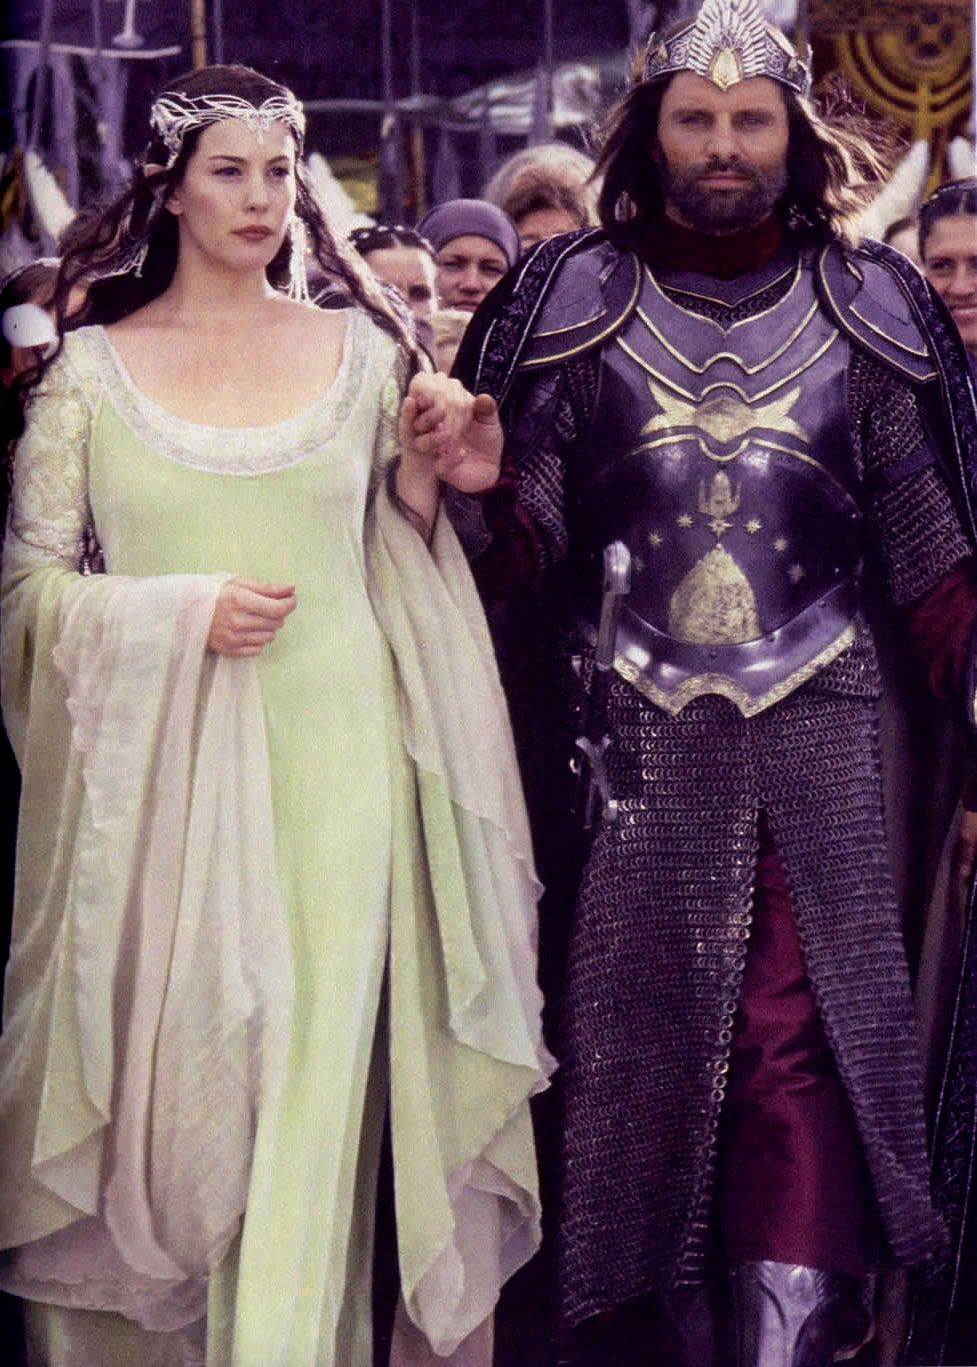 Lotr10 Jpg 977 1 367 Pixels Lord Of The Rings Aragorn And Arwen Aragorn